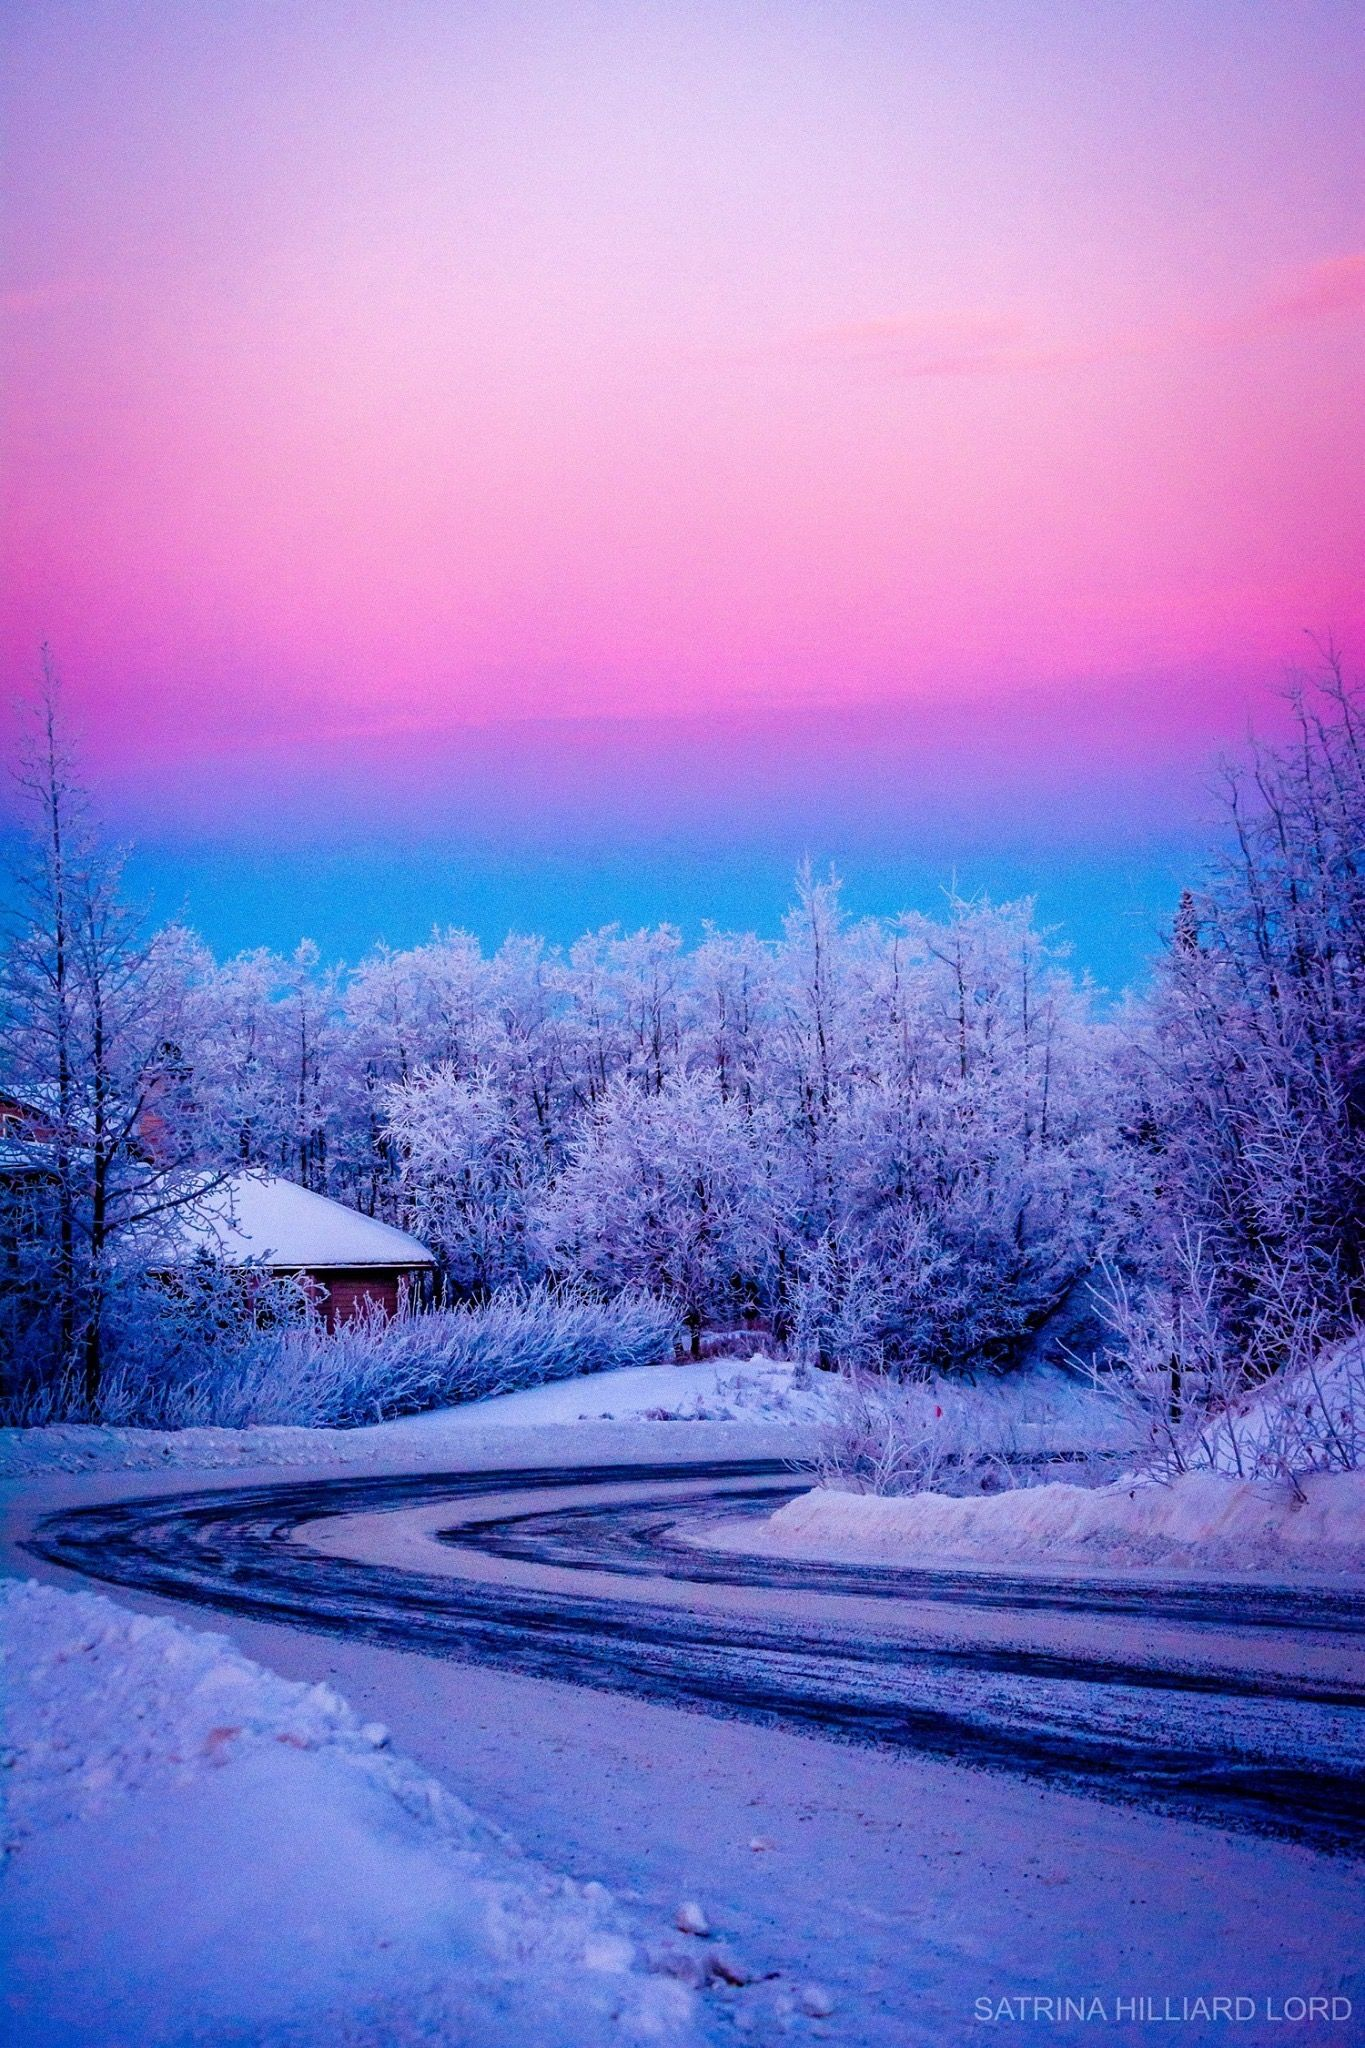 Beautiful Winter Outfit Www Pinterest Com: This Image Shows Colors Of A Winter Sky. The Mixing Of